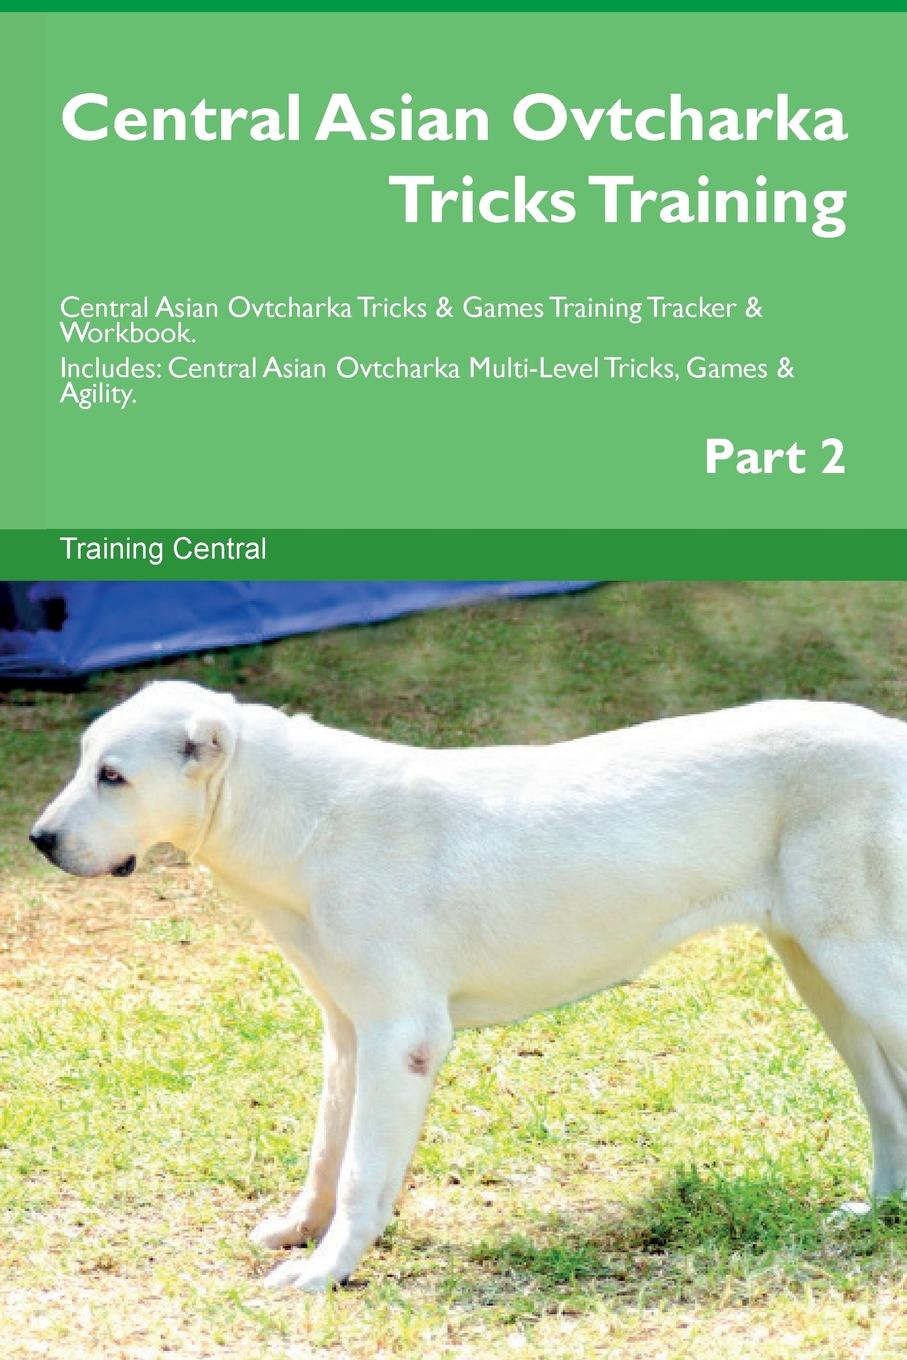 Training Central Central Asian Ovtcharka Tricks Training Central Asian Ovtcharka Tricks . Games Training Tracker . Workbook. Includes. Central Asian Ovtcharka Multi-Level Tricks, Games . Agility. Part 2 phlebotomine sand flies of central sudan